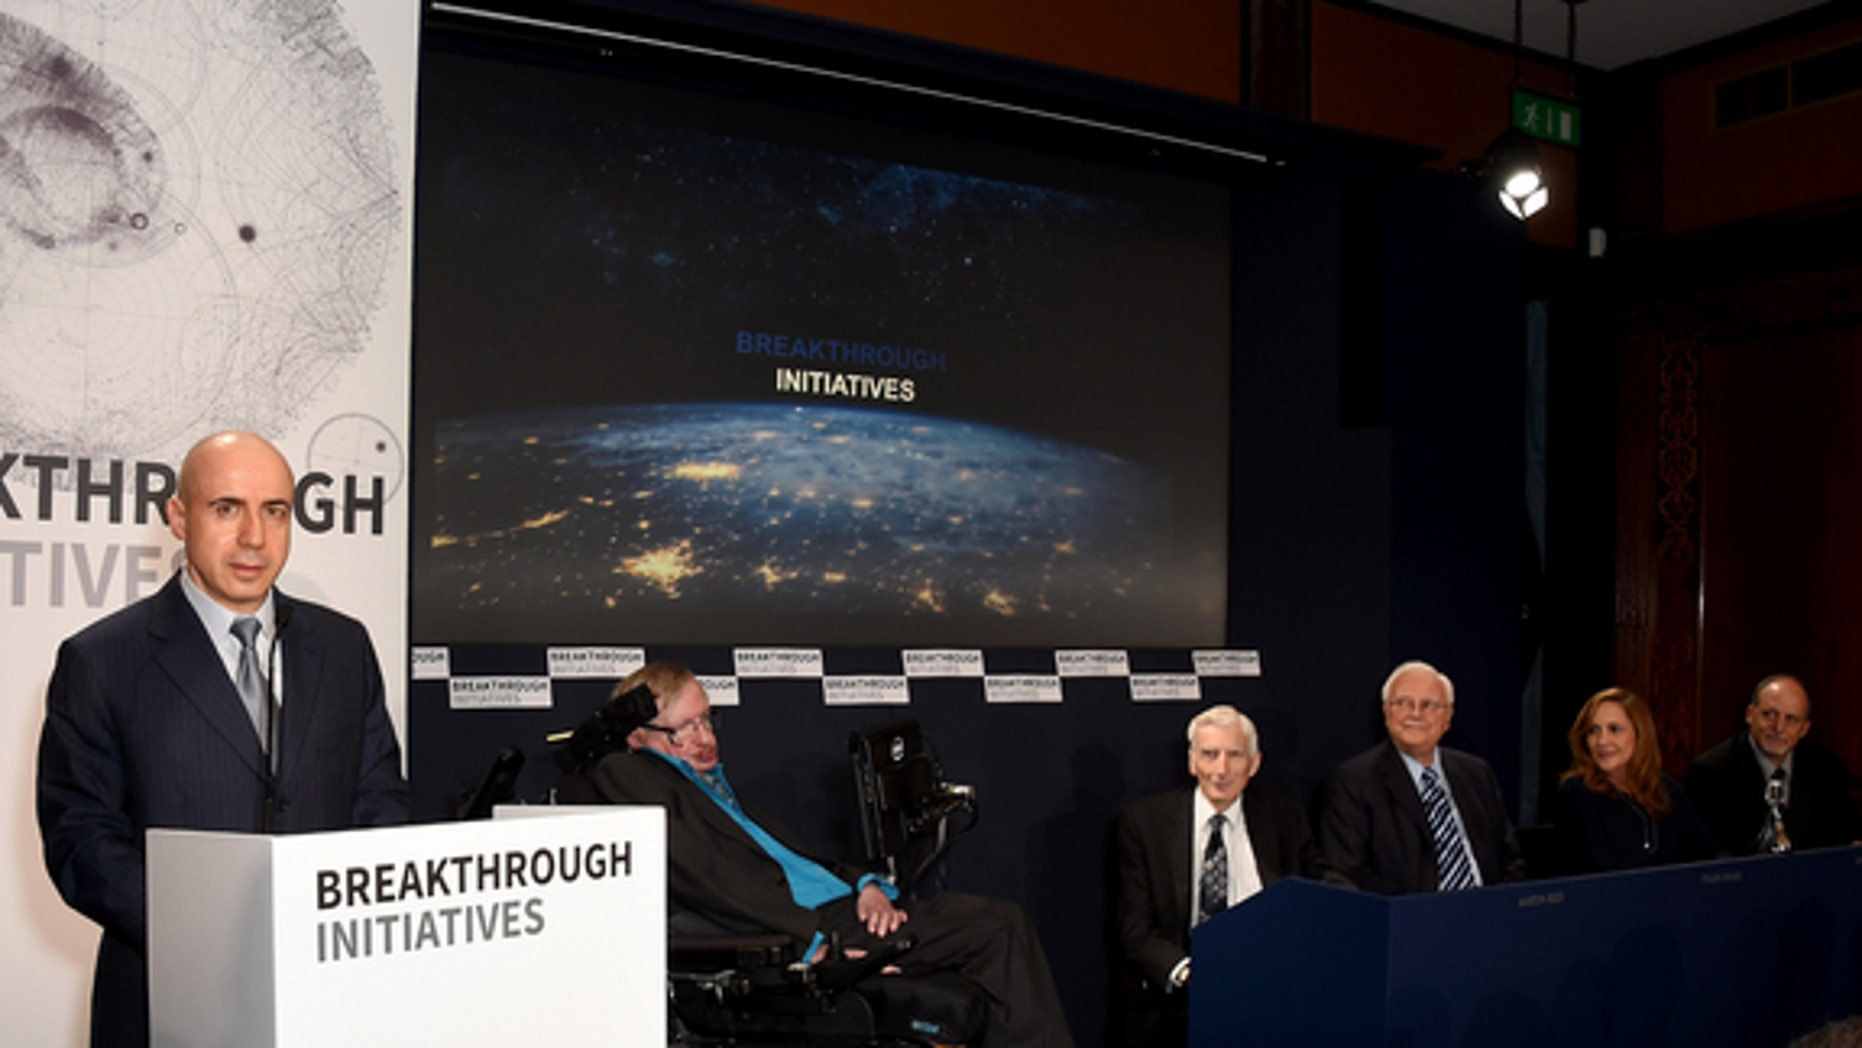 The announcement of the Breakthrough Listen and Breakthrough Message initiatives was made today (July 20) in London. Making the announcement were Internet investor Yuri Milner and physicist Stephen Hawking.